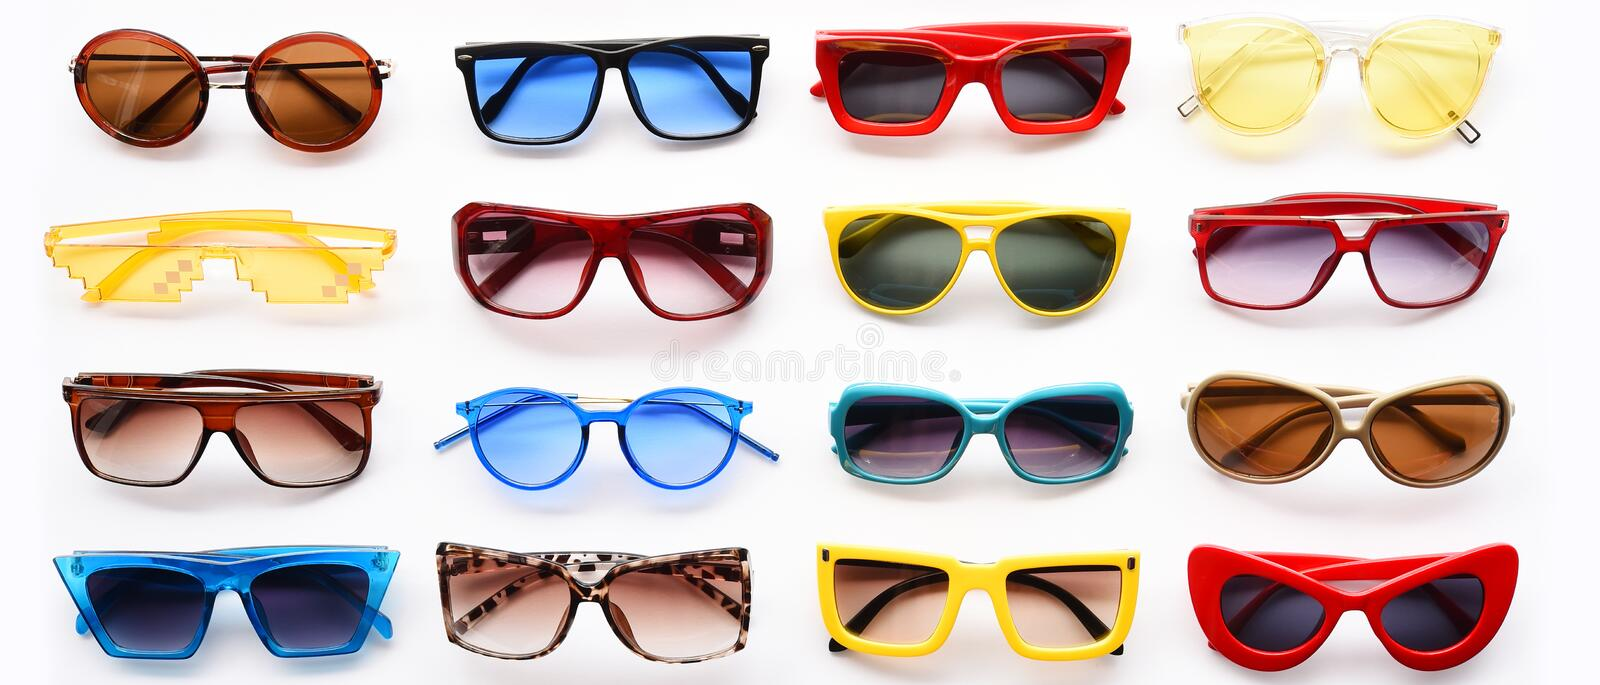 Modern fashionable sunglasses royalty free stock photos